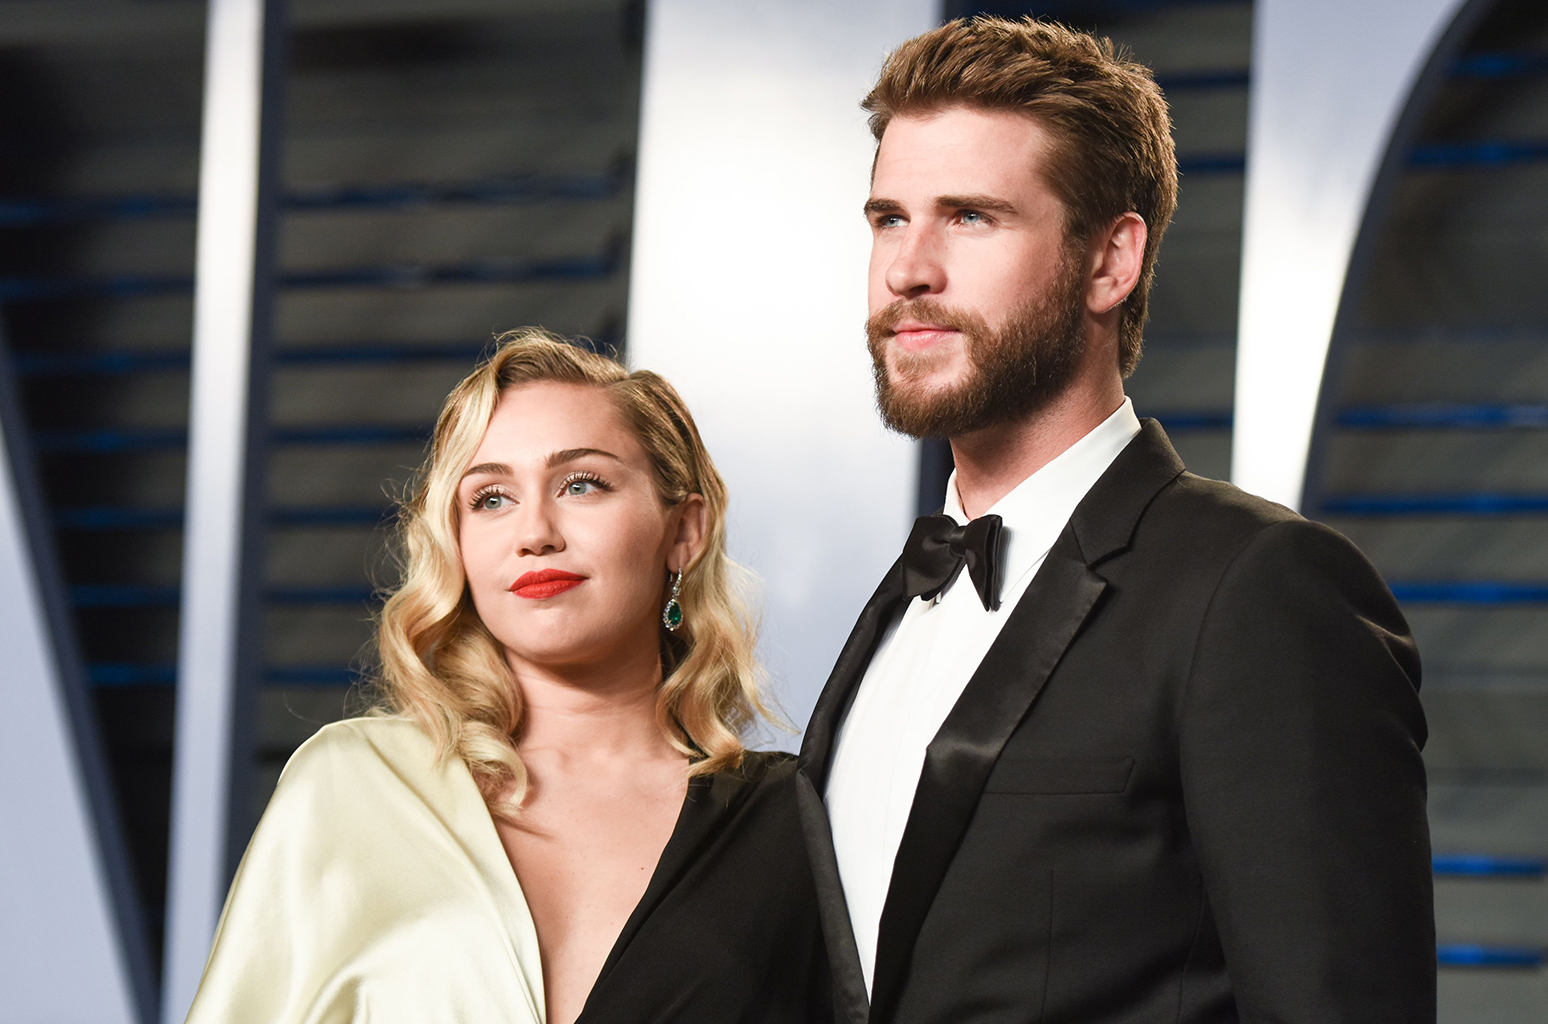 Miley Cyrus And Liam Hemsworth Divorce Is Finalized - SR Now